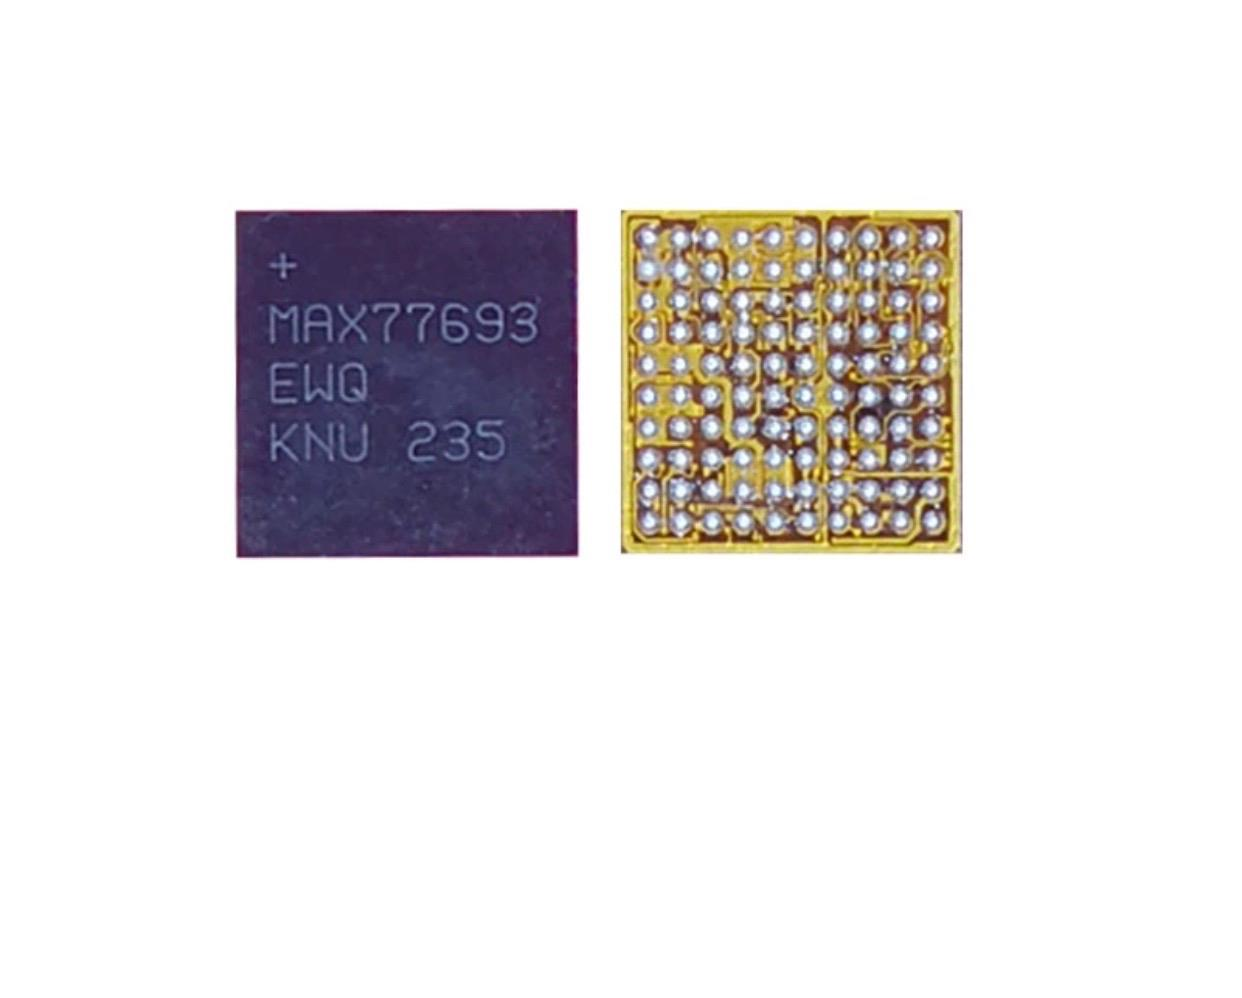 Samsung I9300 s3 N7100 note 2 small power management IC MAX77693